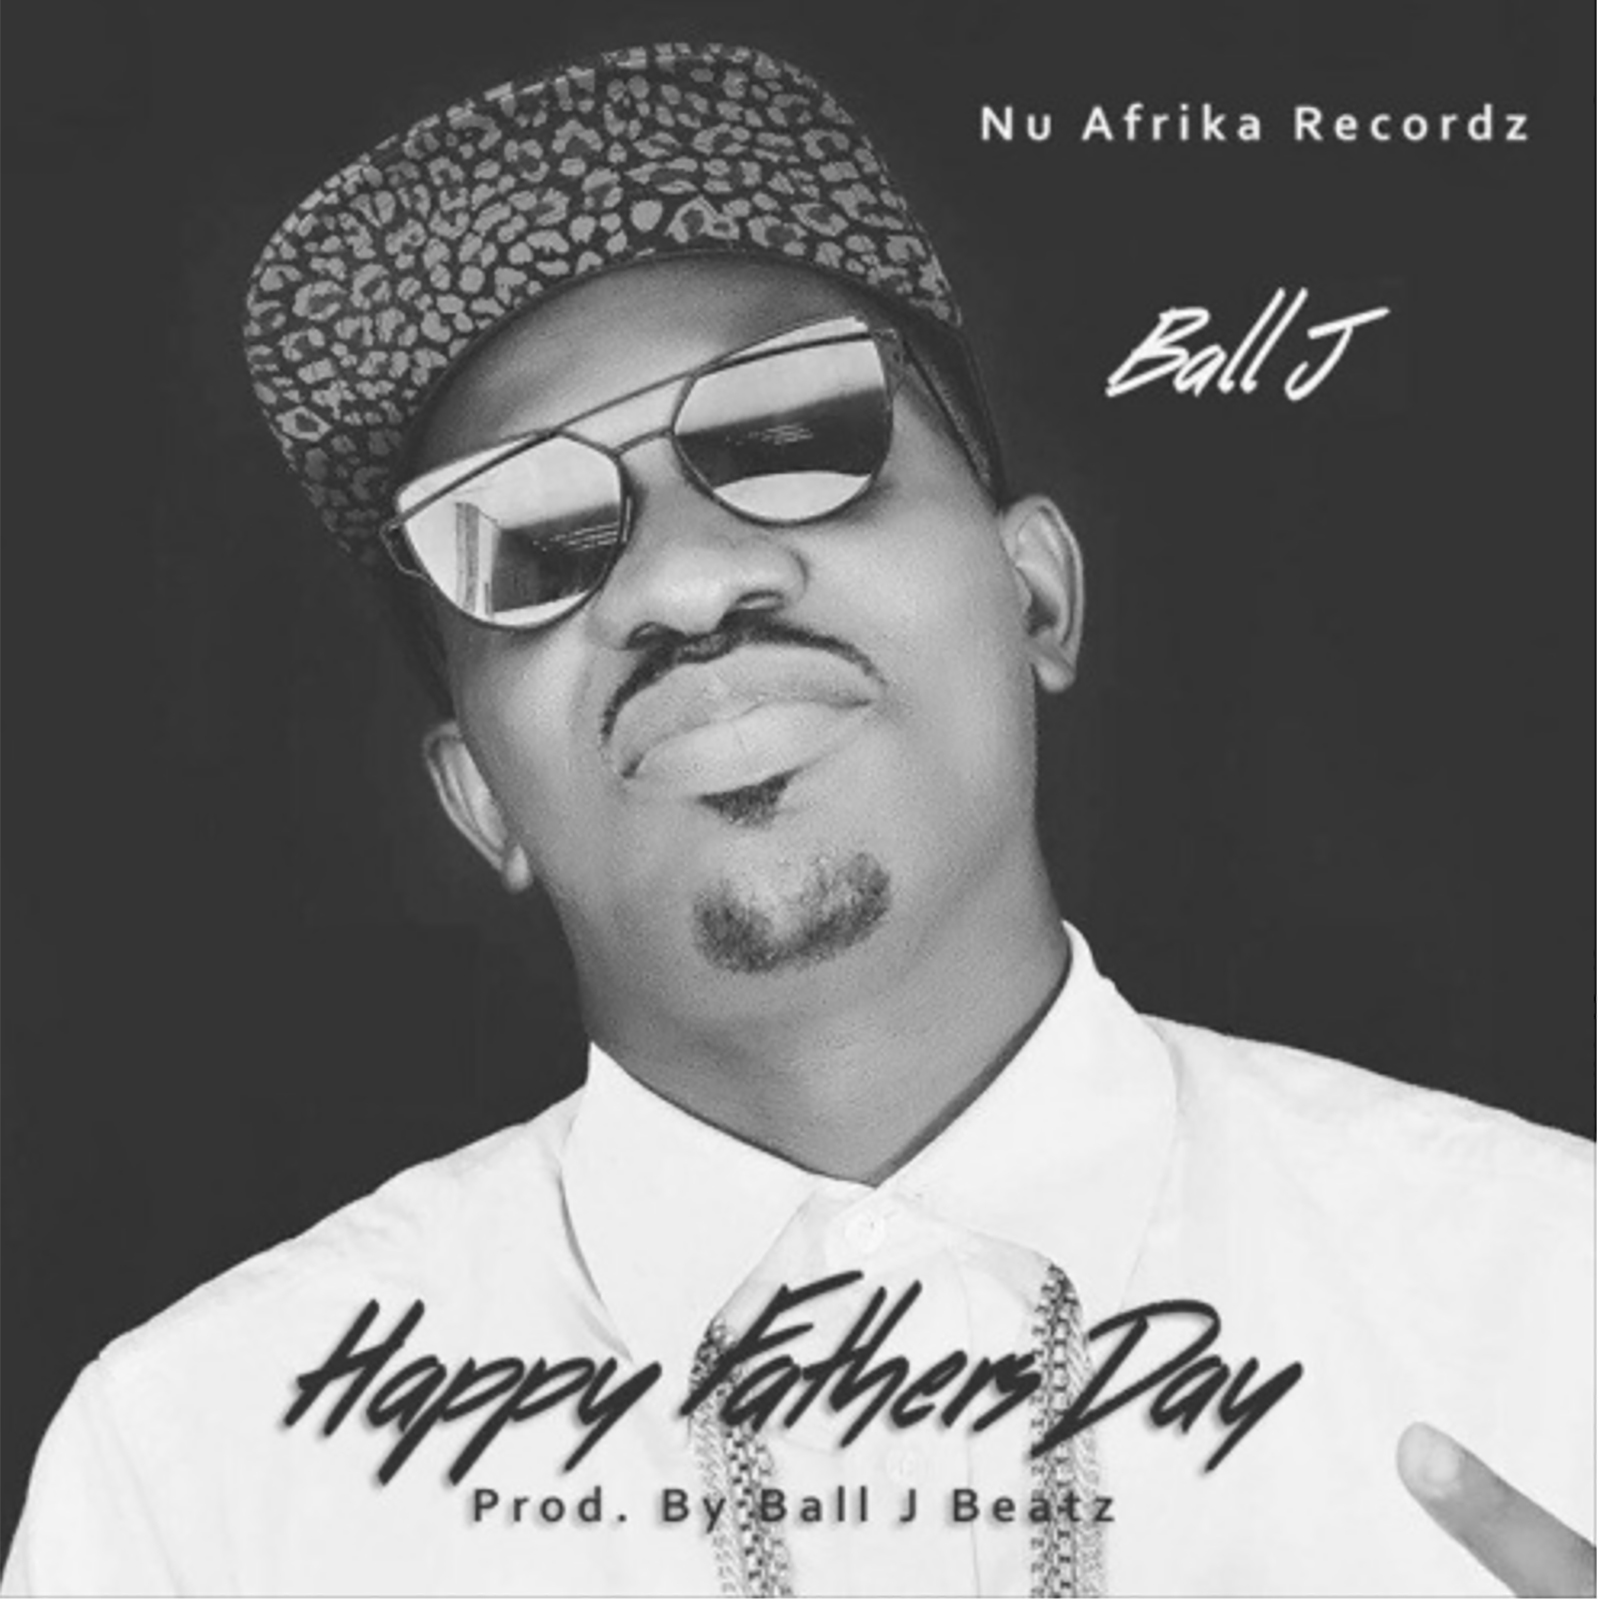 Fathers Day by Ball J